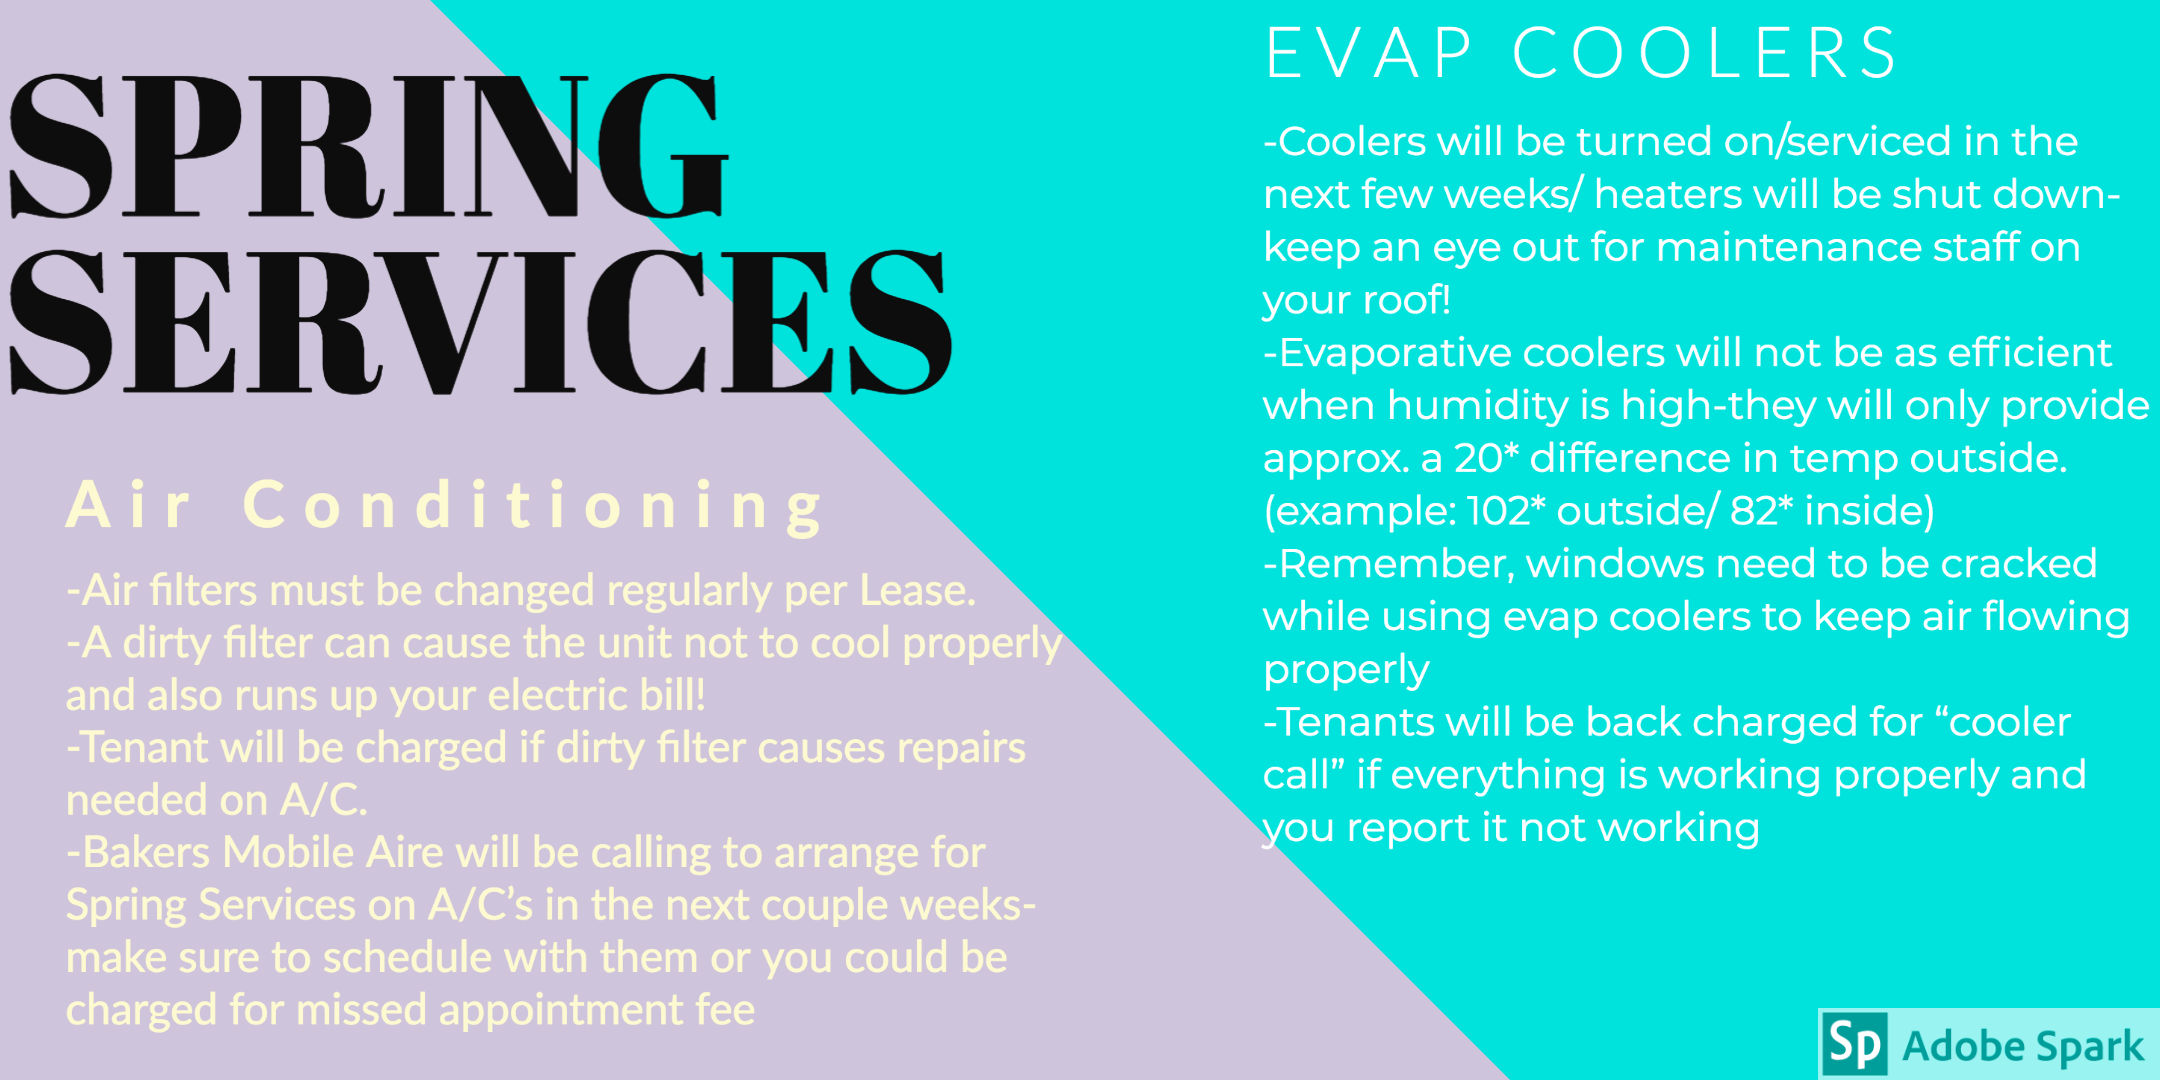 Spring Service Flyer For Tenants